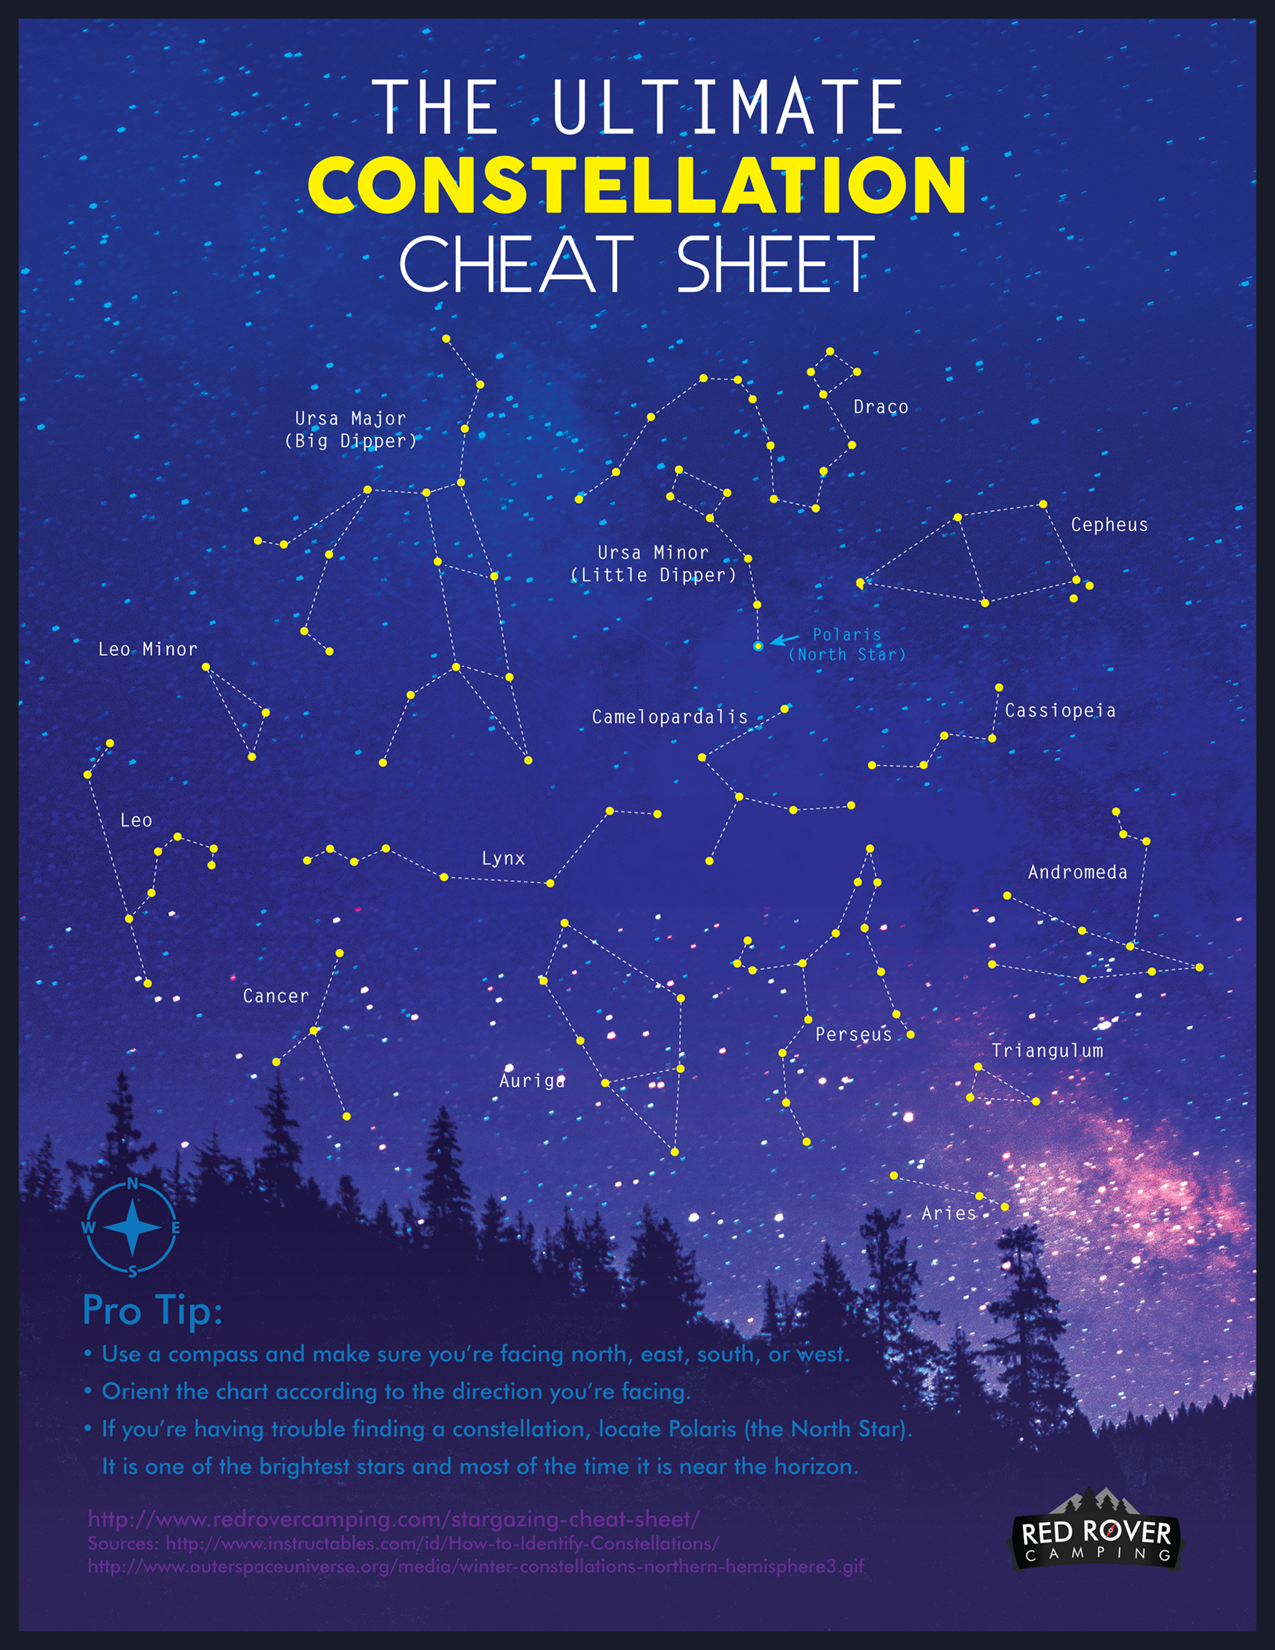 The Ultimate Constellation Cheat Sheet